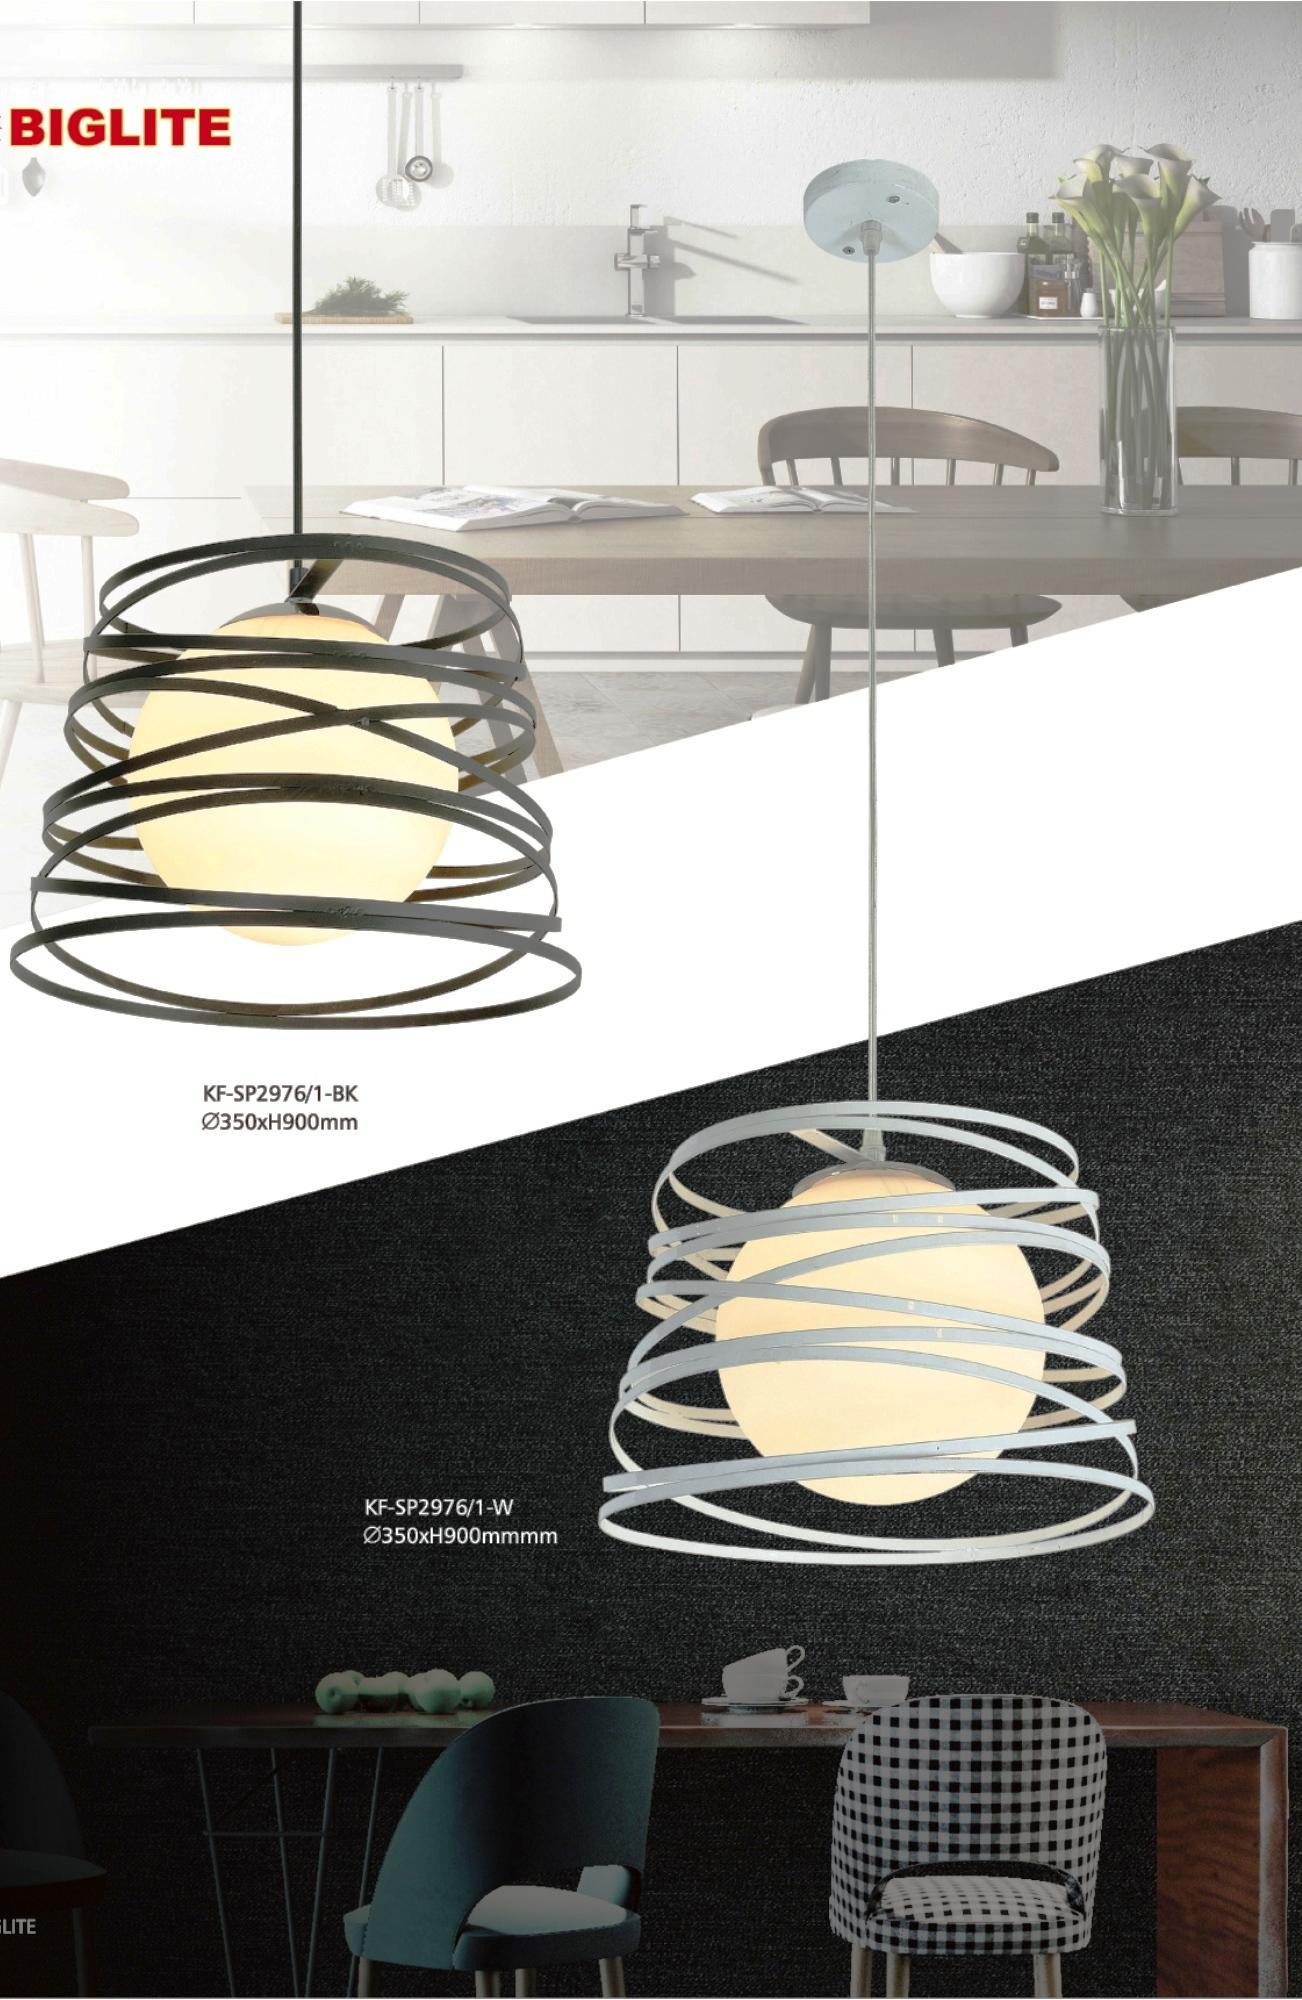 Ceiling Lights For Sale Chandelier Prices Brands Review Awesome Pendant Light Wiring Kit Images Decoration Inspiration Biglite Metal Hanging Lamp Sp2976 1 Wh Modern Contemporary Led Lighting